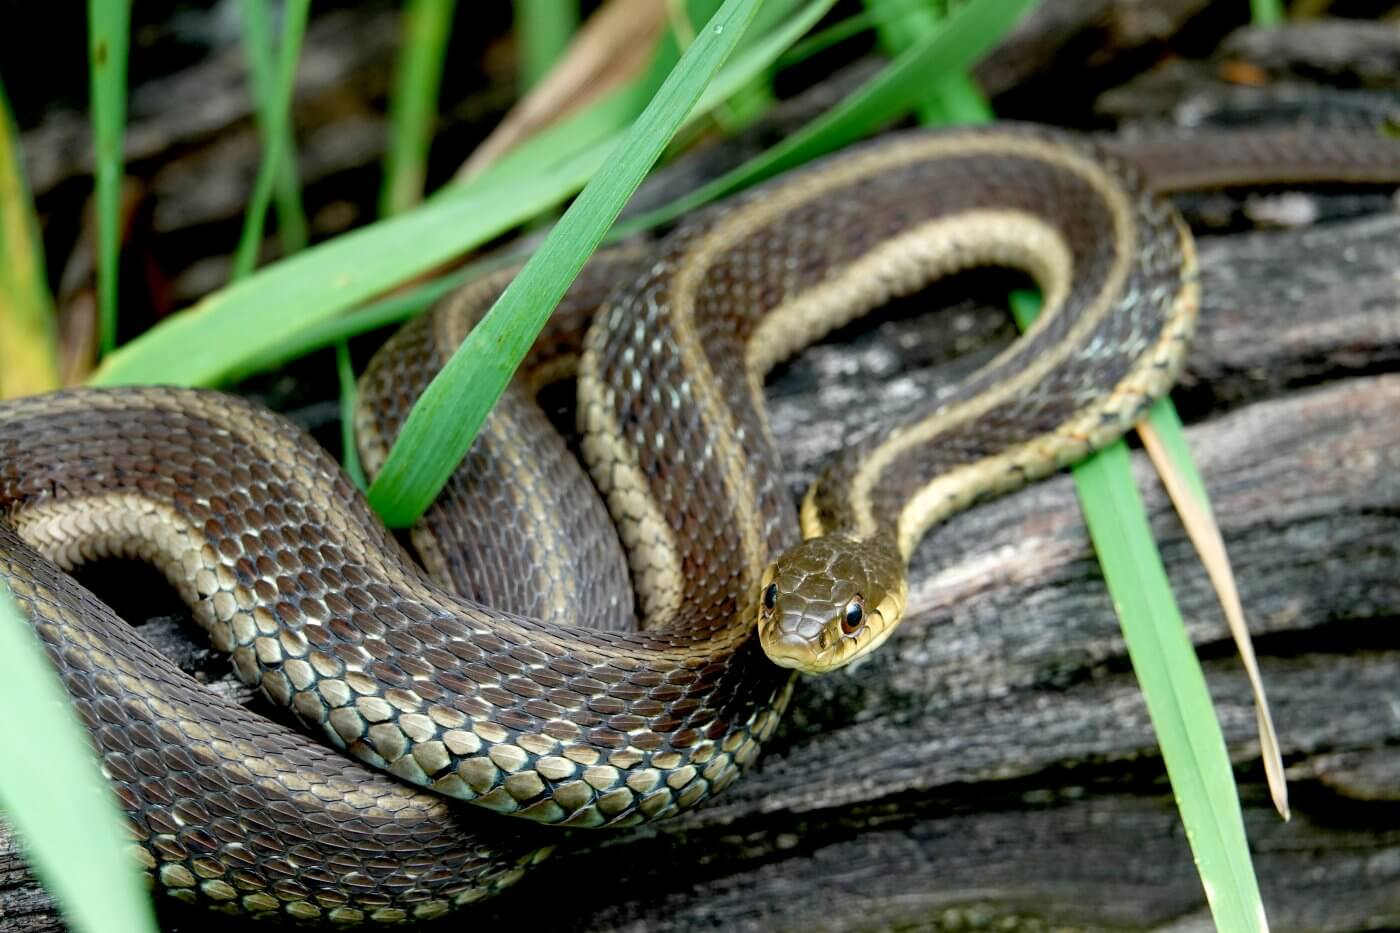 Should You Remove a Garter Snake?